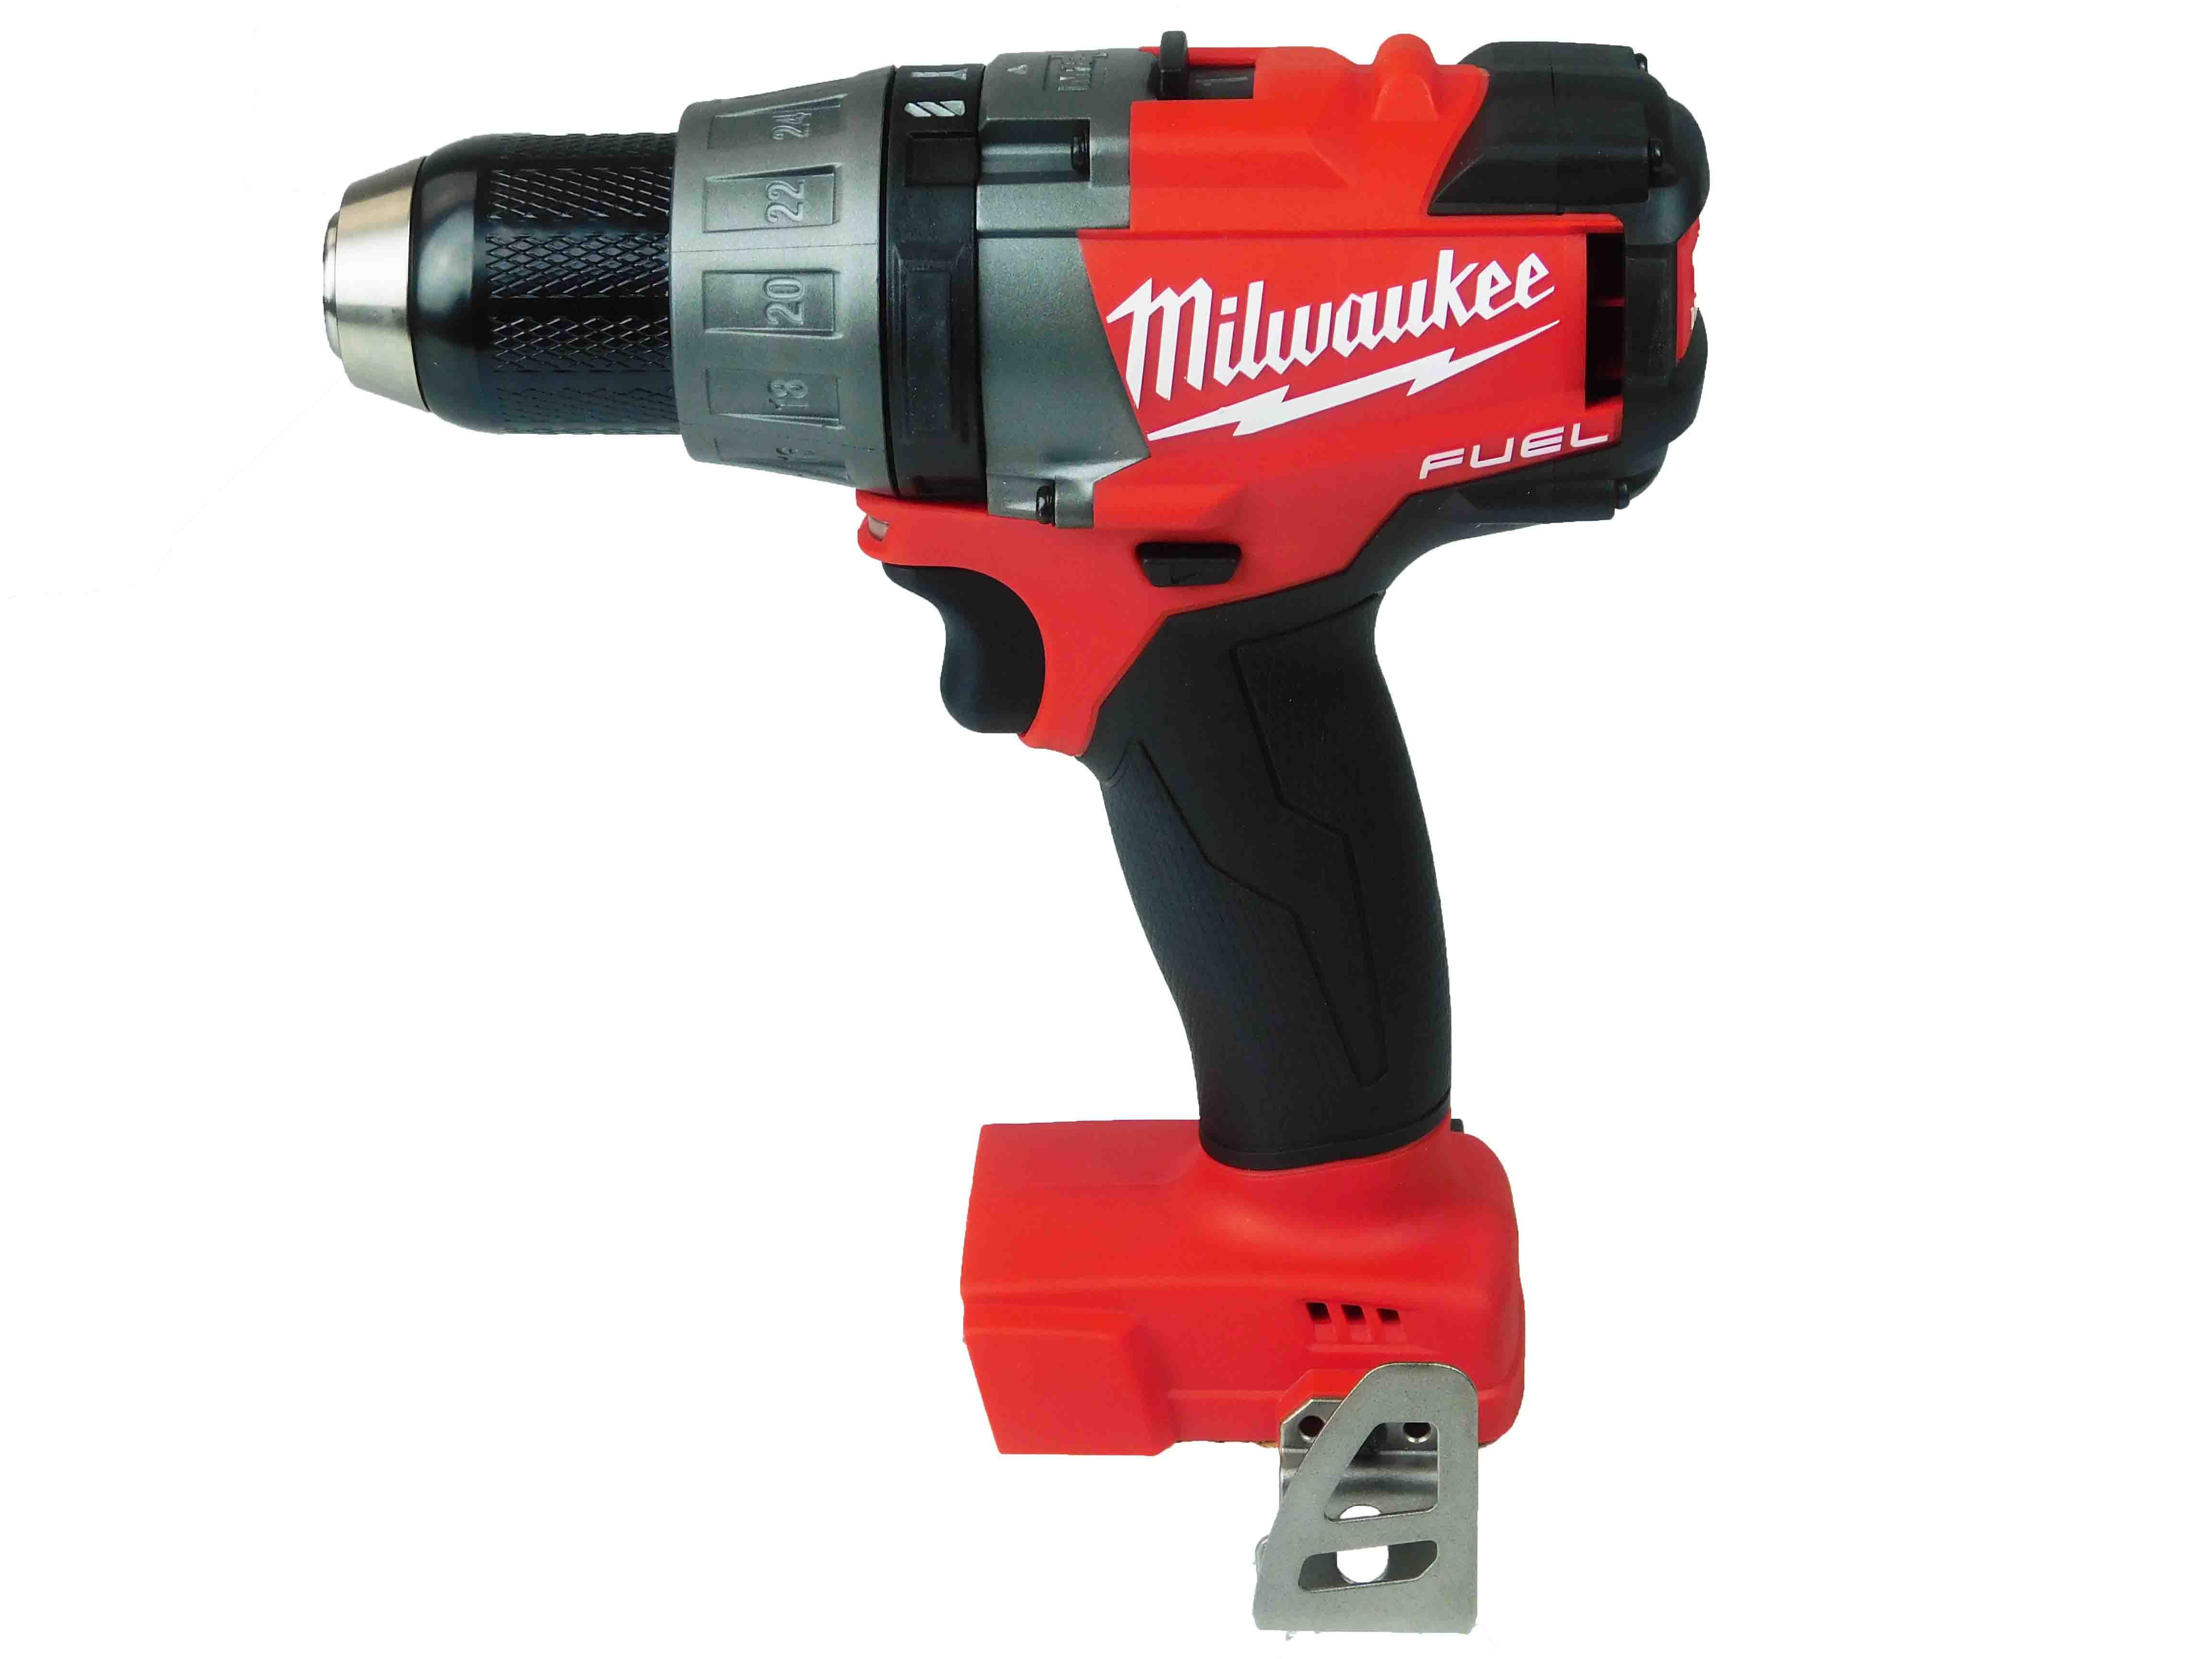 Milwaukee-2703-20-M18-Compact-1-2-Drill-Driver-Bare-Tool-image-9